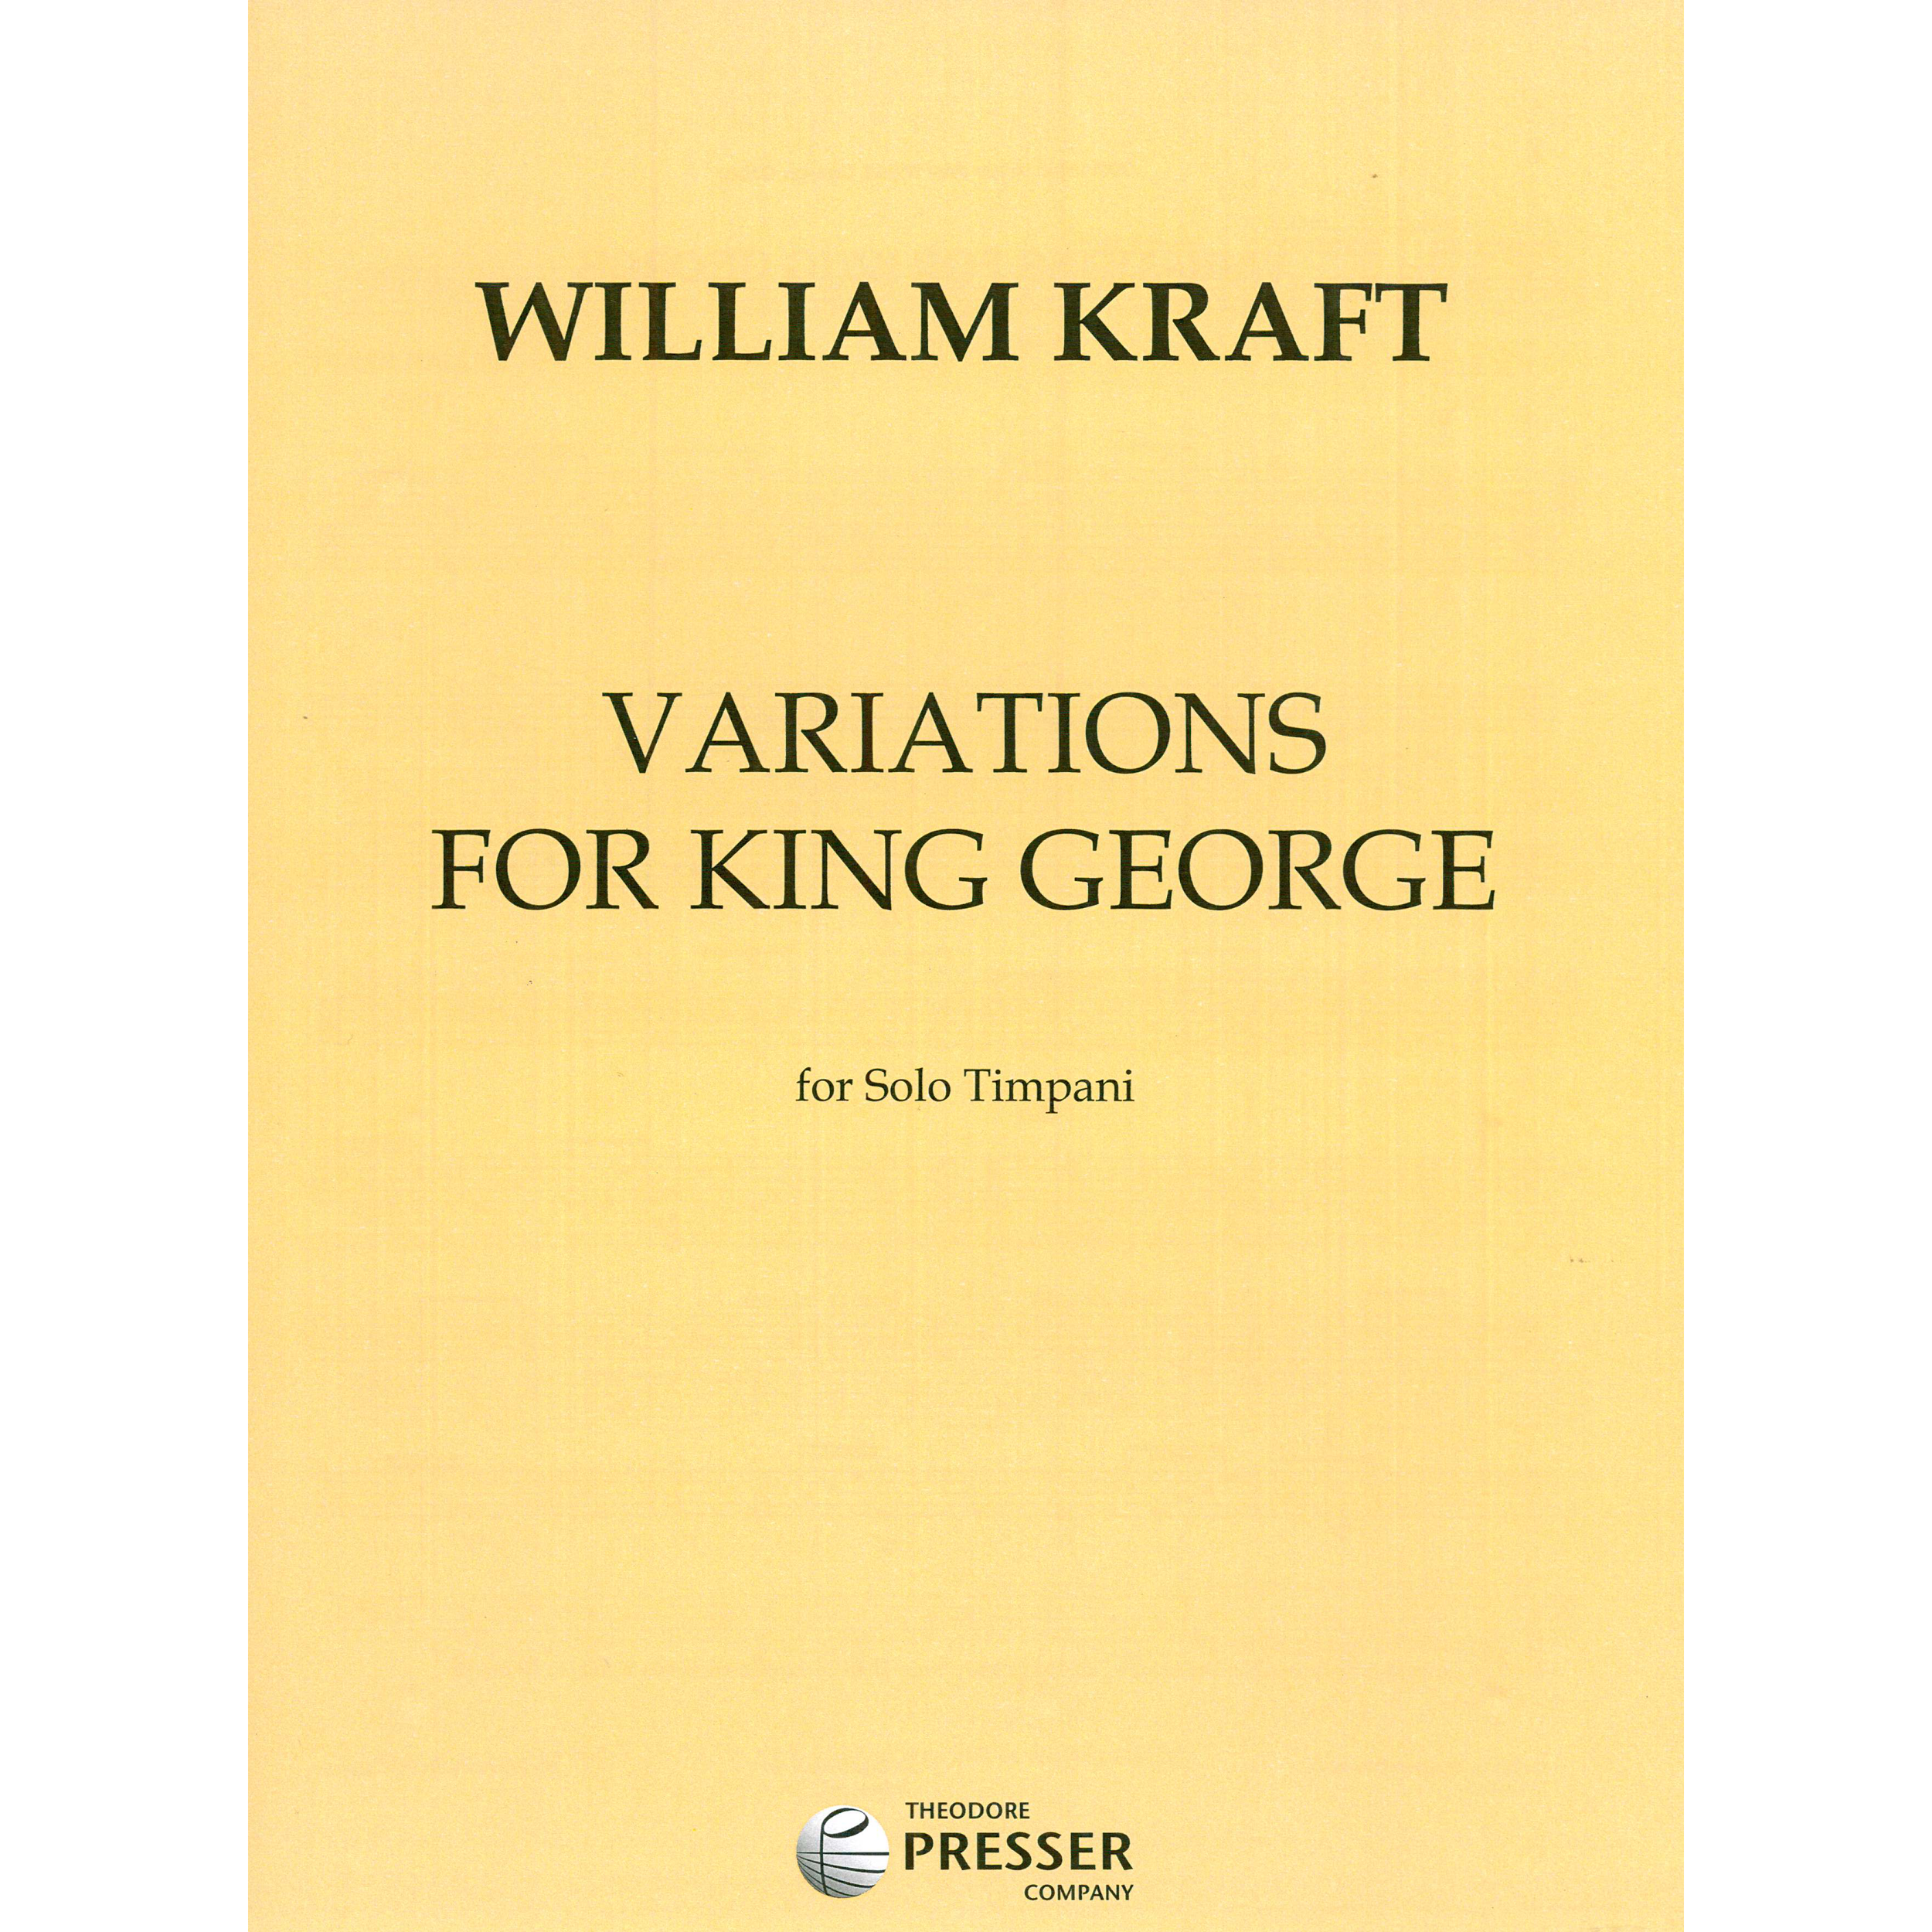 Variations for King George by William Kraft